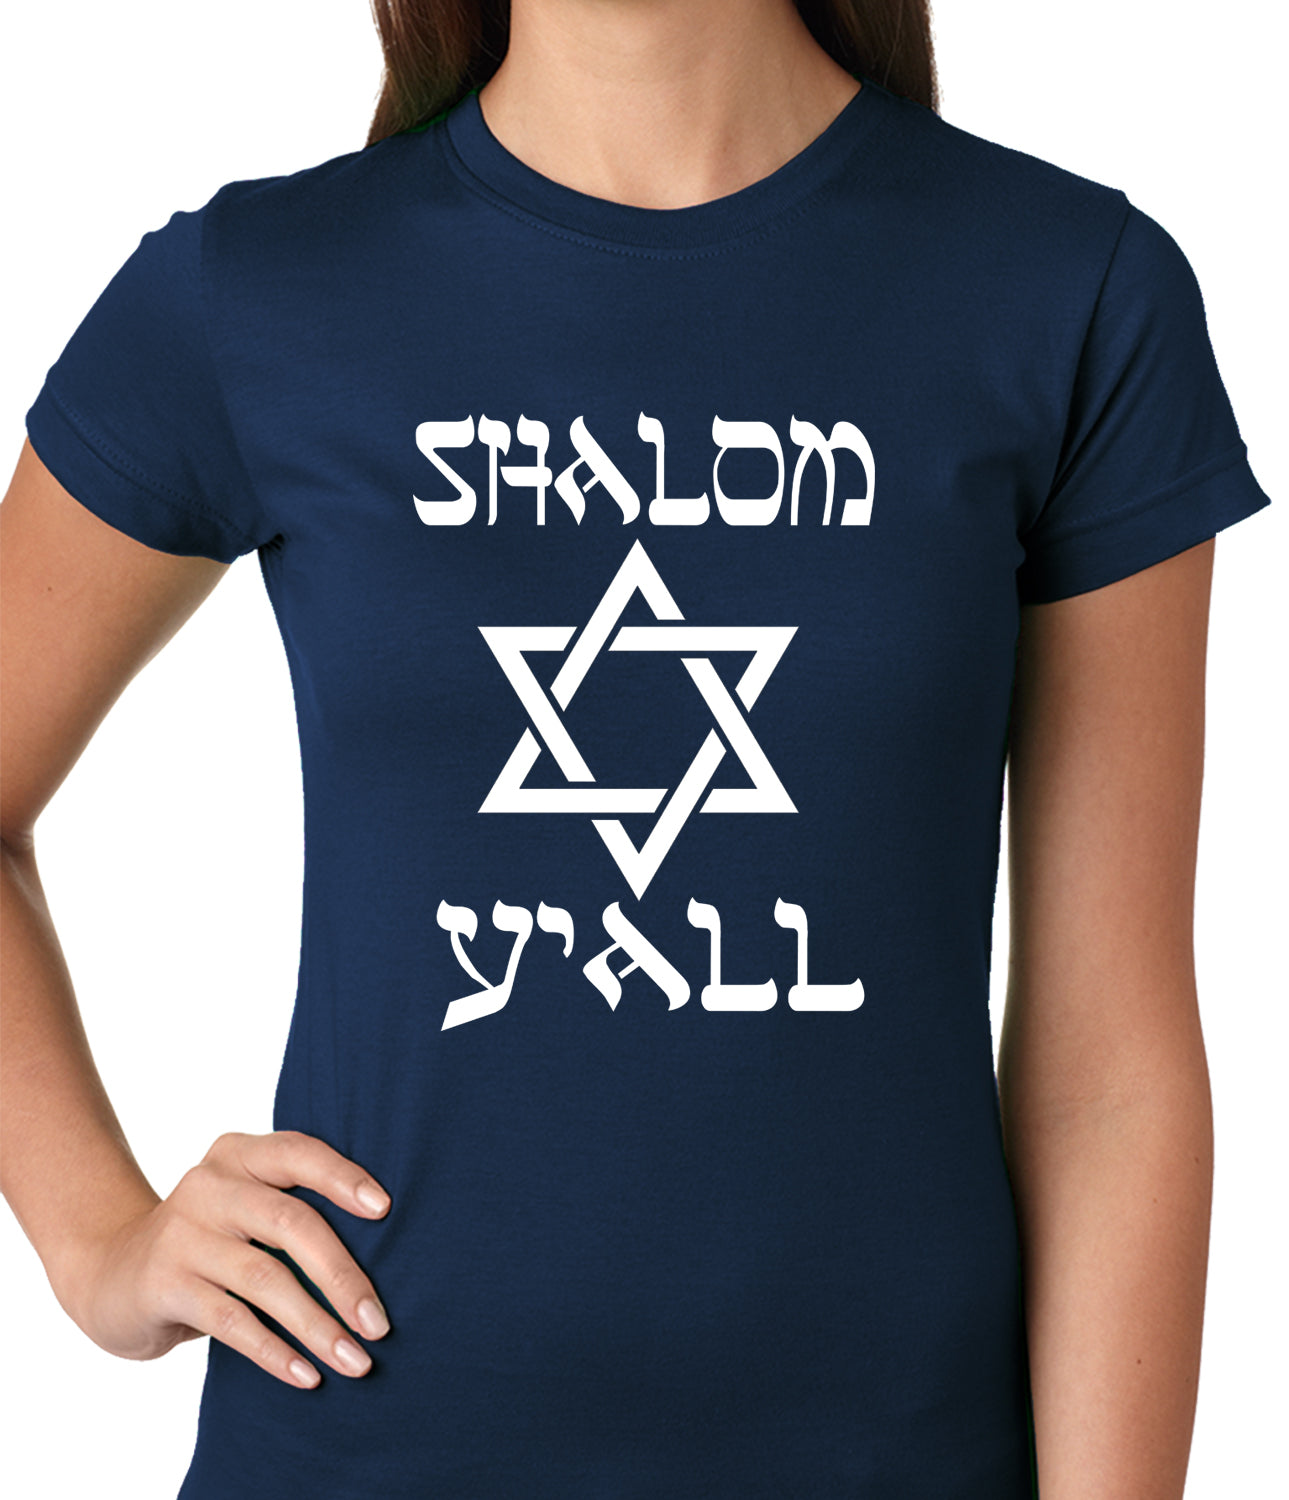 Shalom Y'all Ladies T-shirt